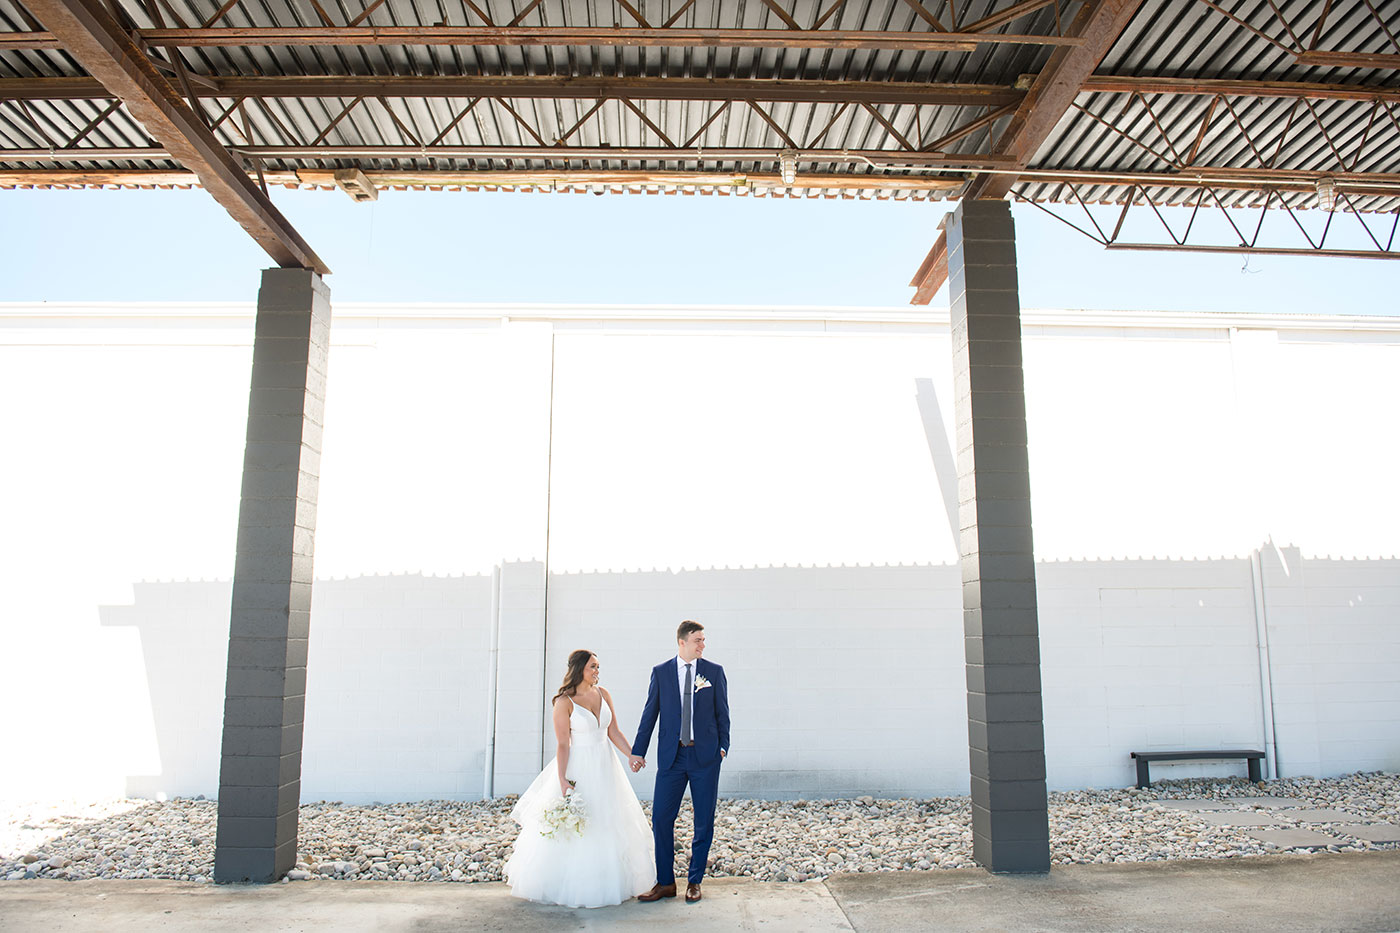 Mojave East Wedding Venue